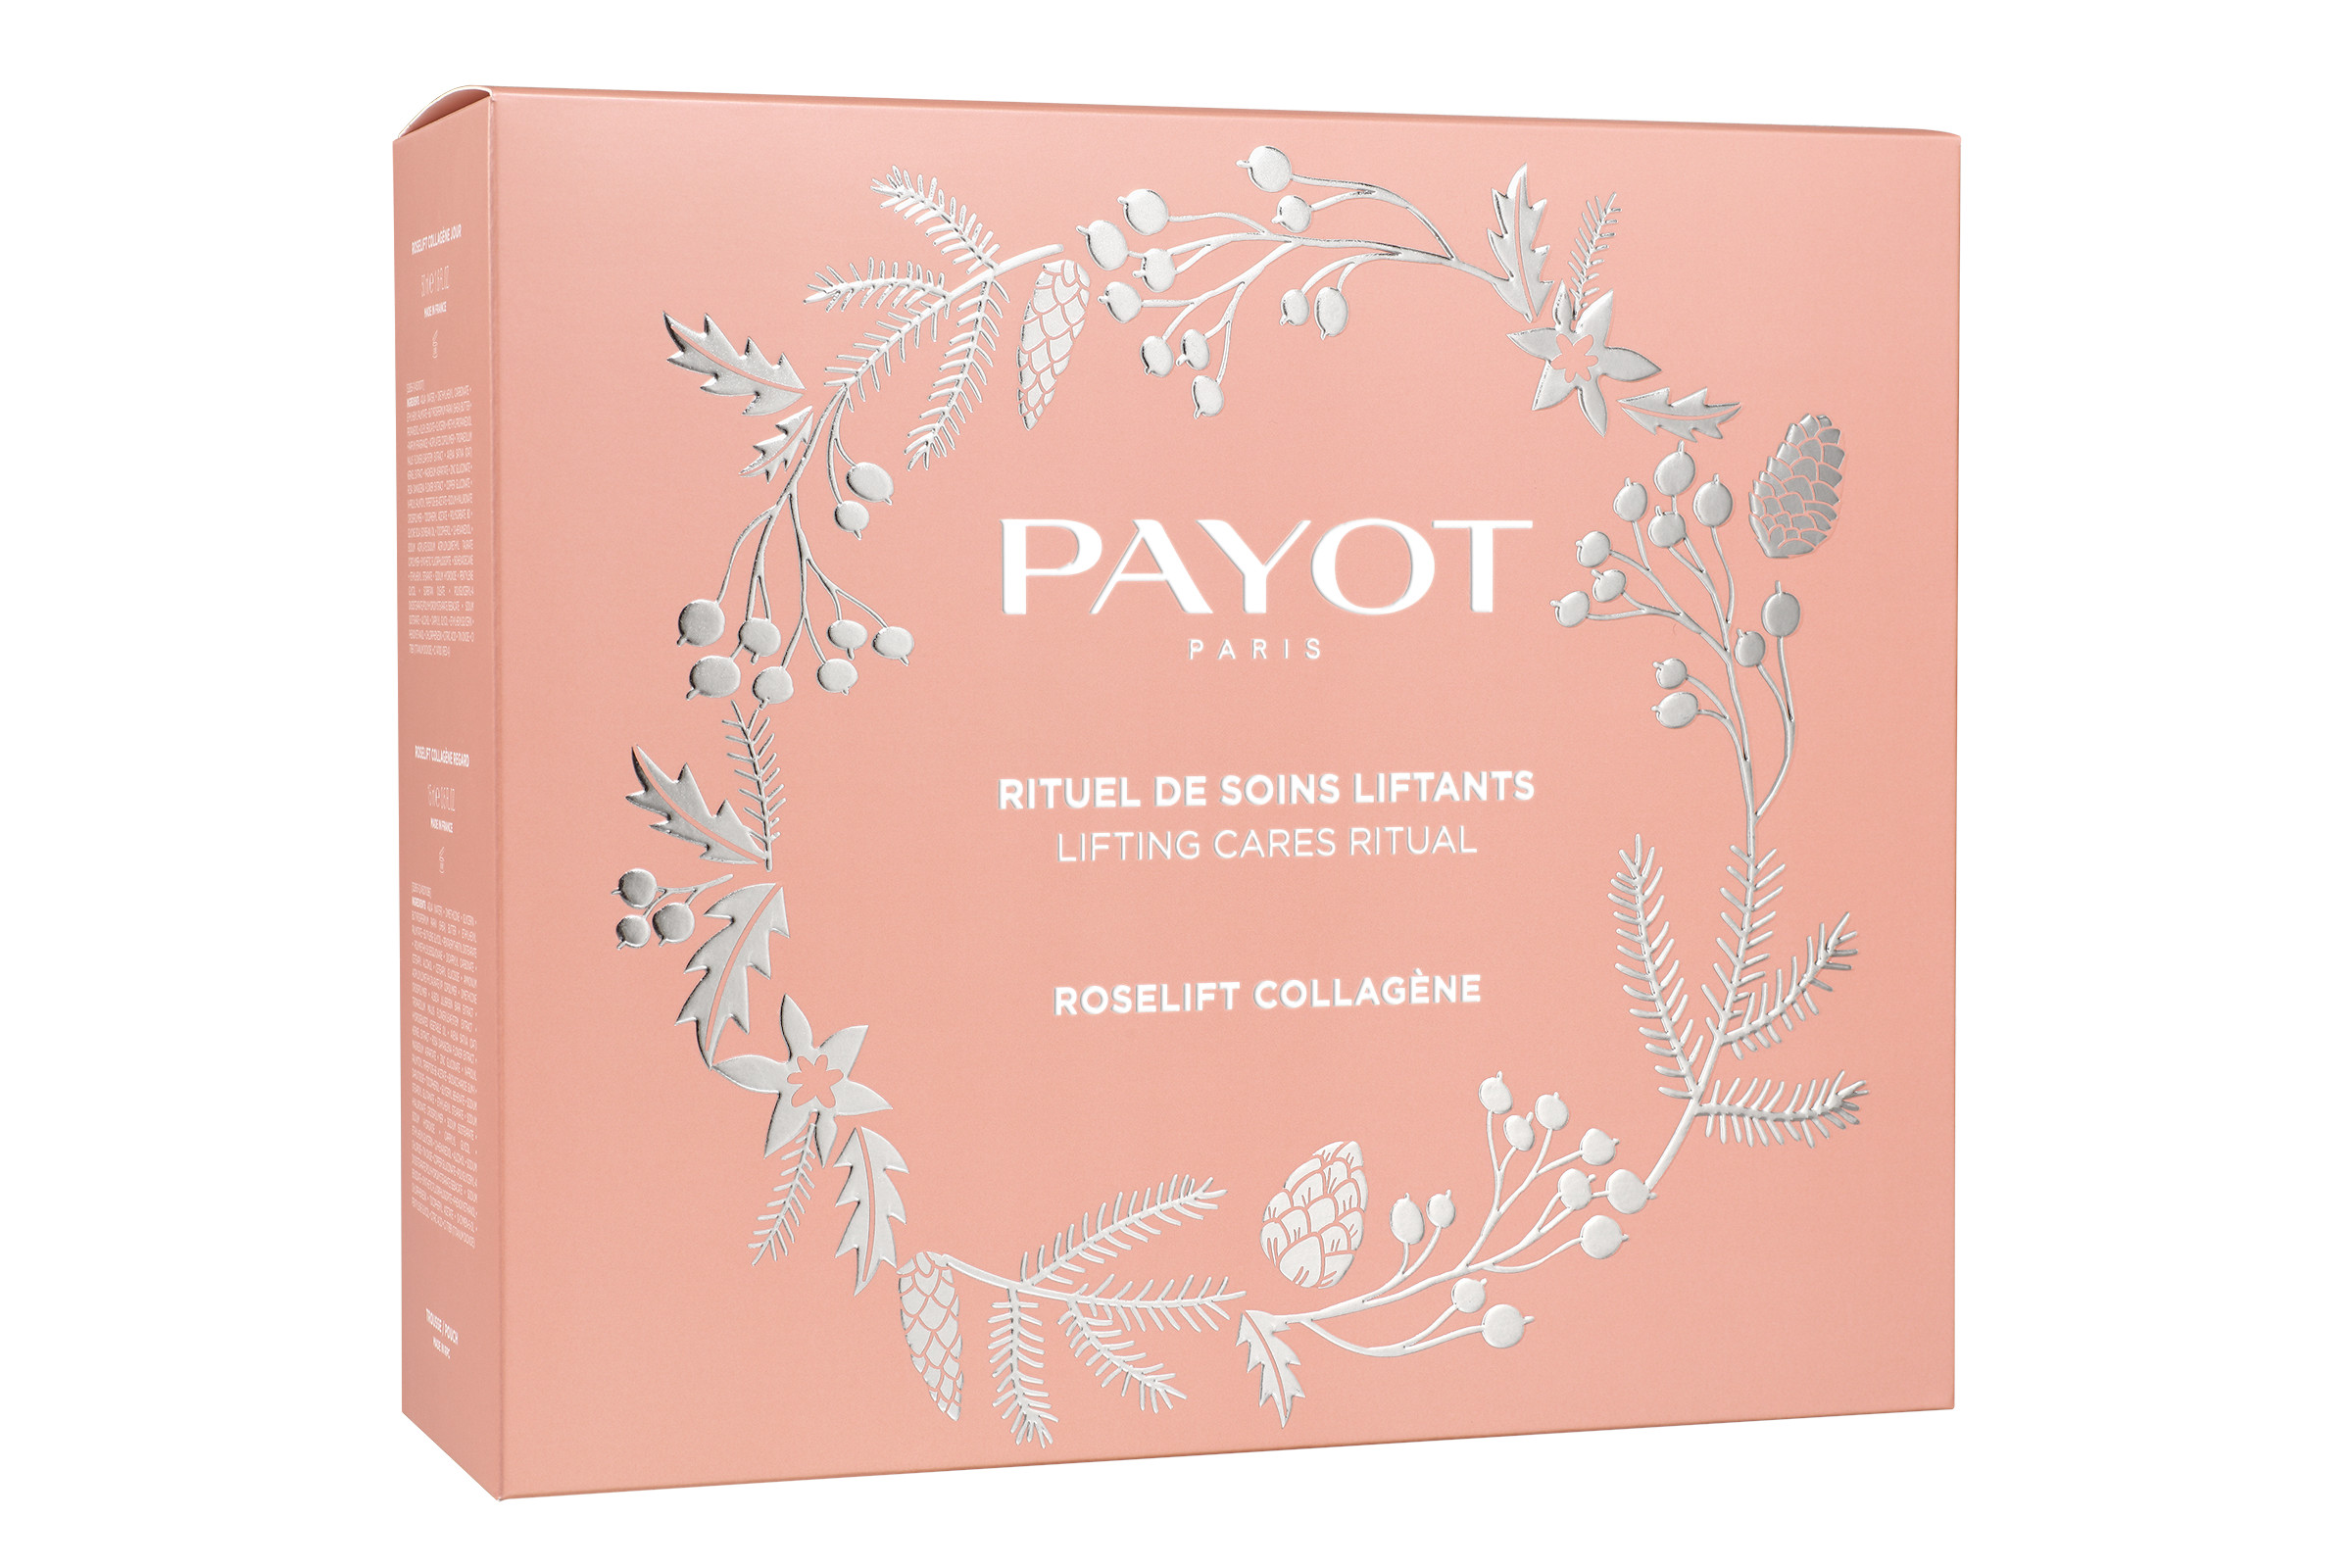 Roselift Collagène Holiday Gift Box